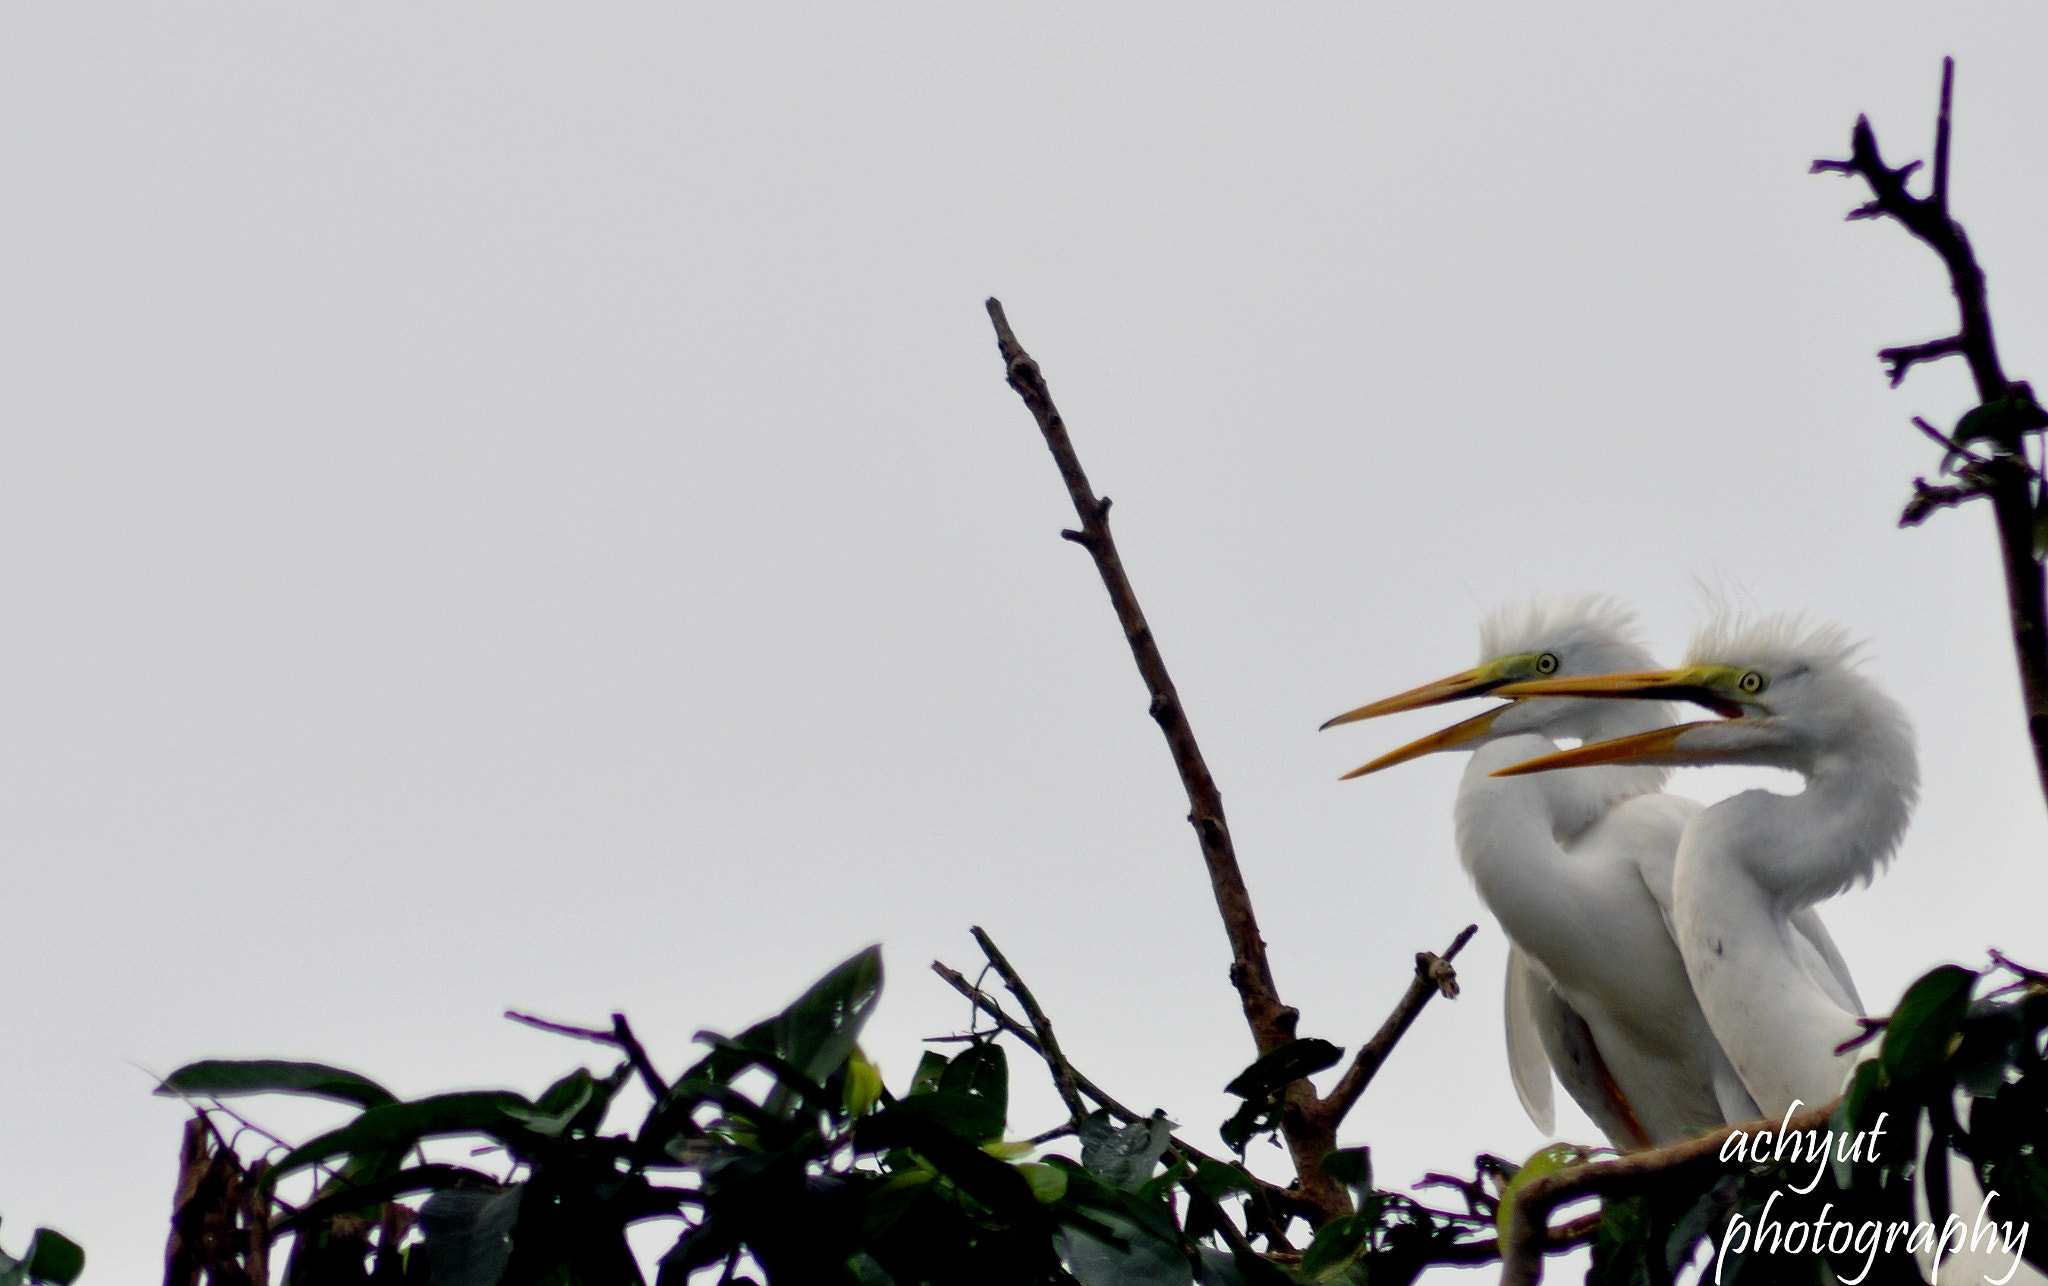 Photograph Baby Egrets Waiting For Food by Achyut Patro on 500px